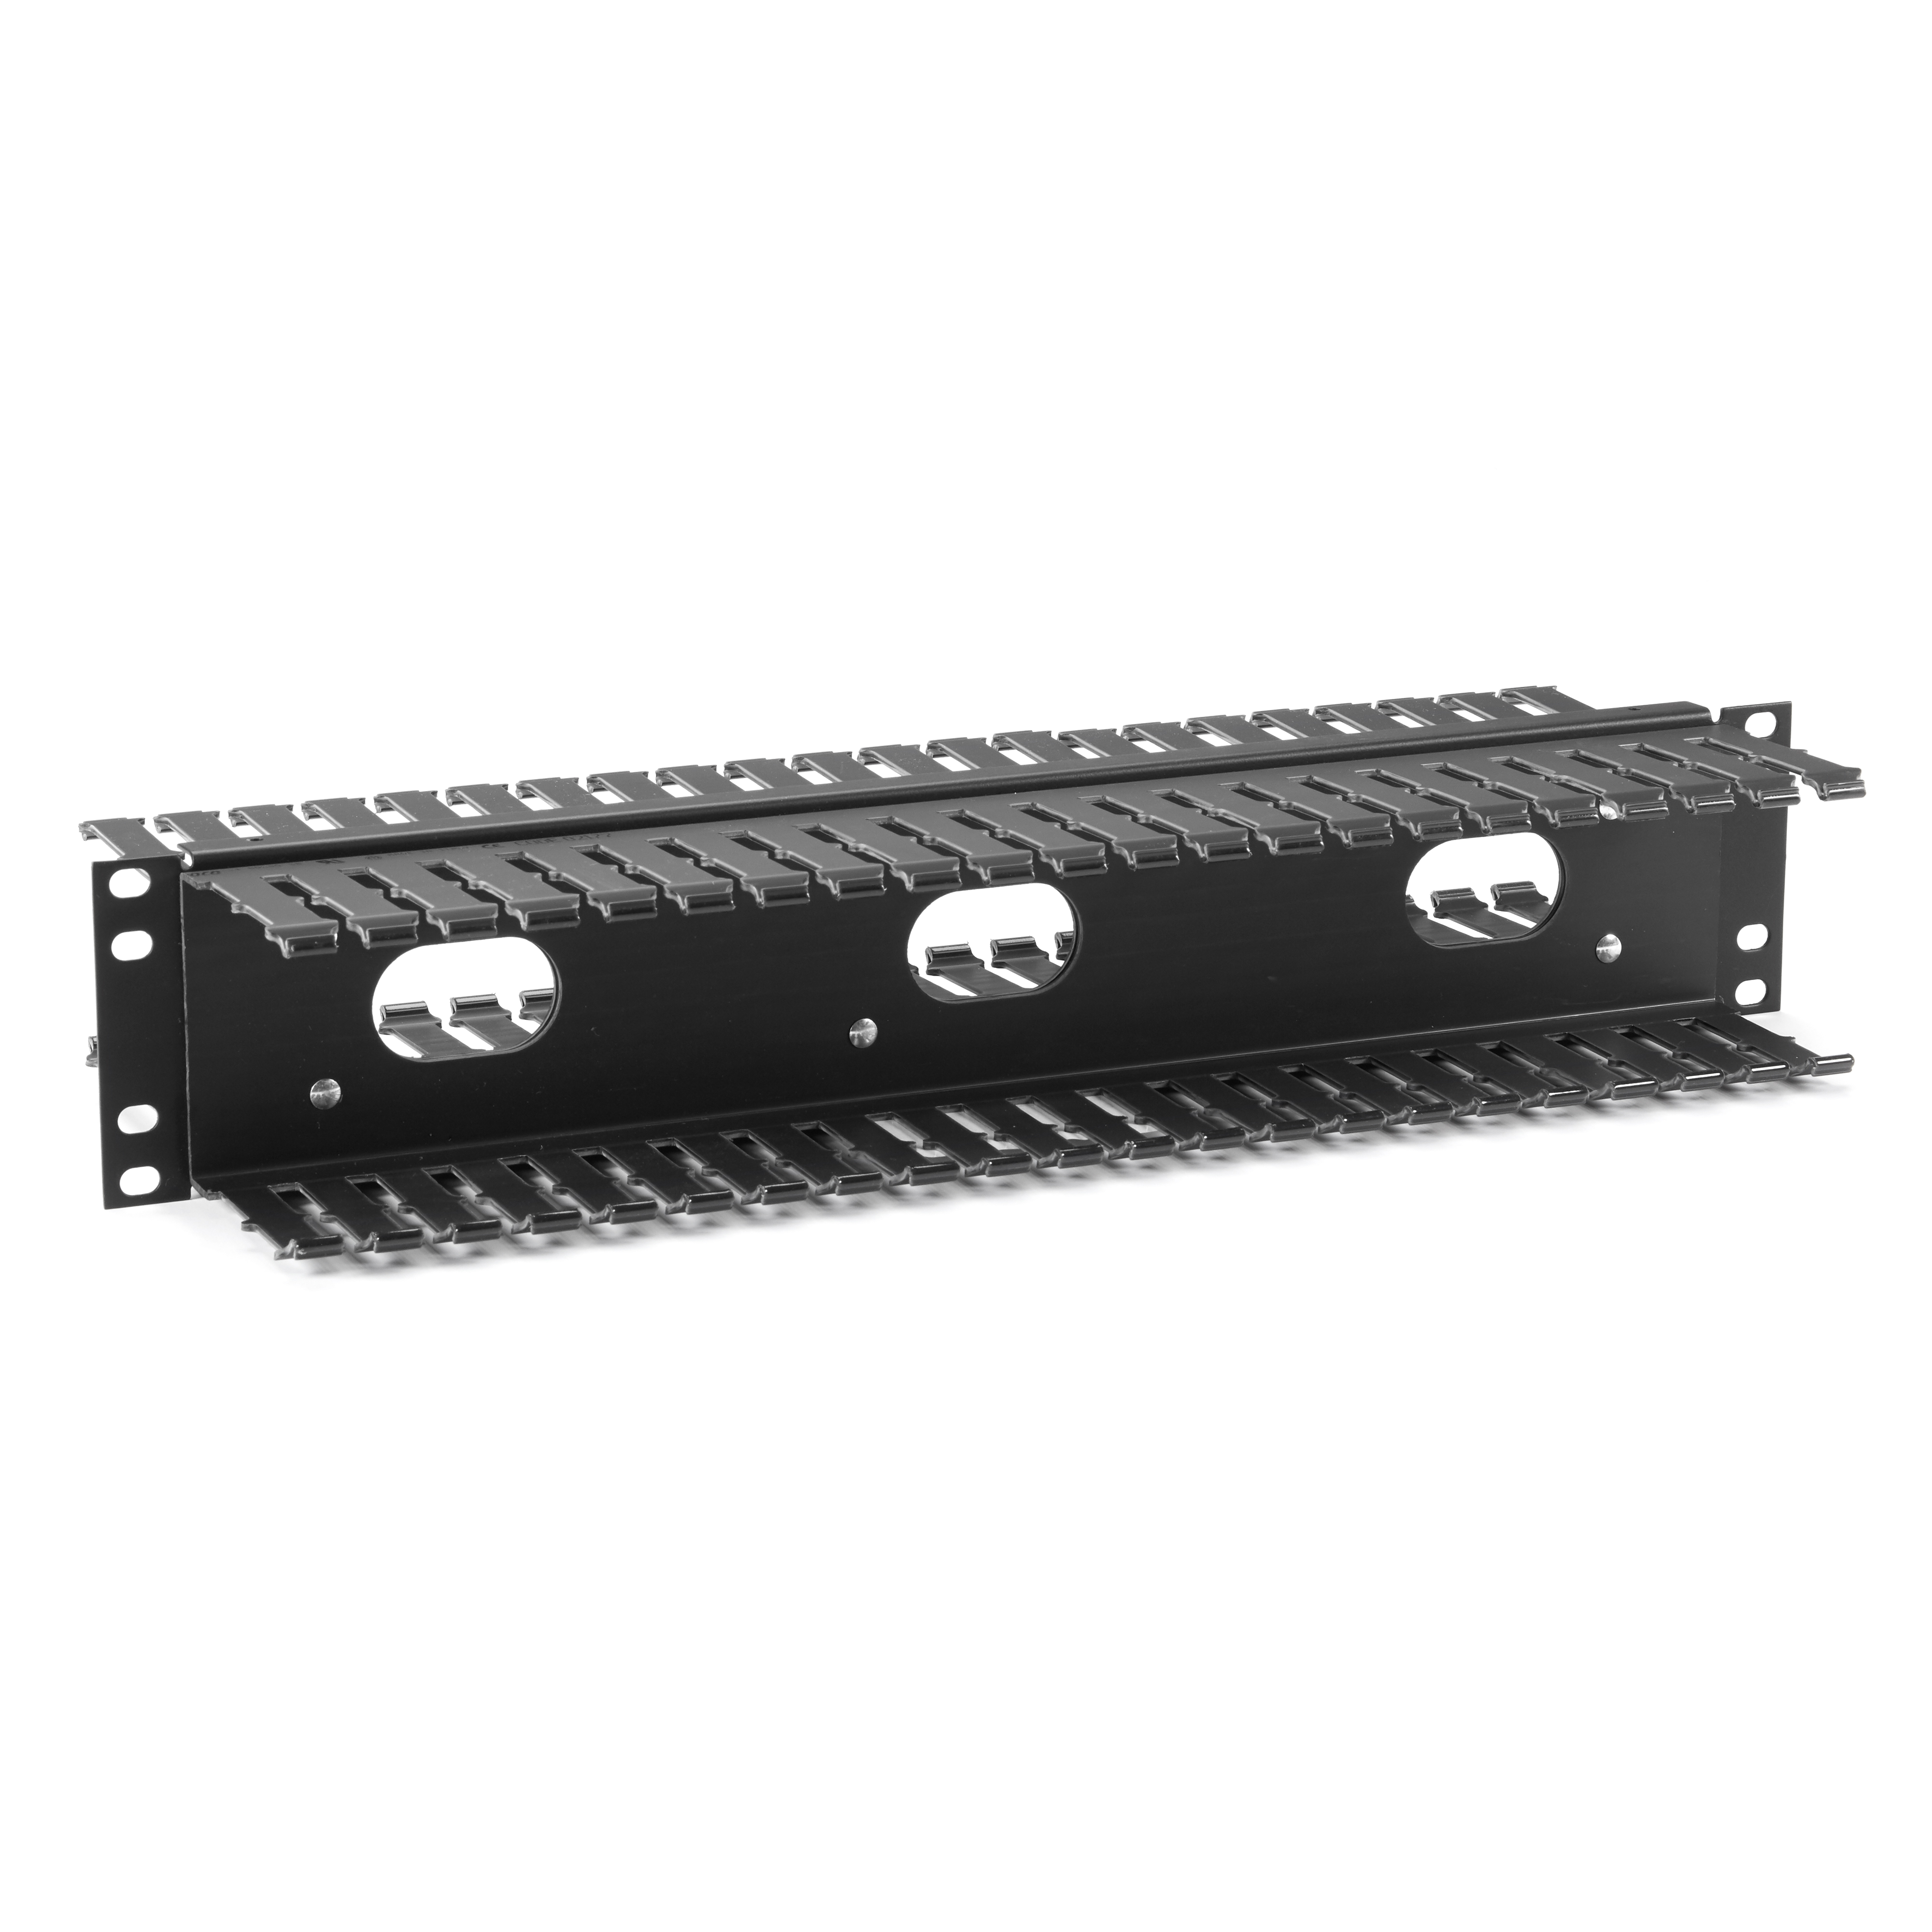 BLACK BOX CORP RM122 SINGLE-SIDED PREMIER CABLE MANAGER 84IN Cable Manager Black Box Corporation RM122 Black Box Cable Management